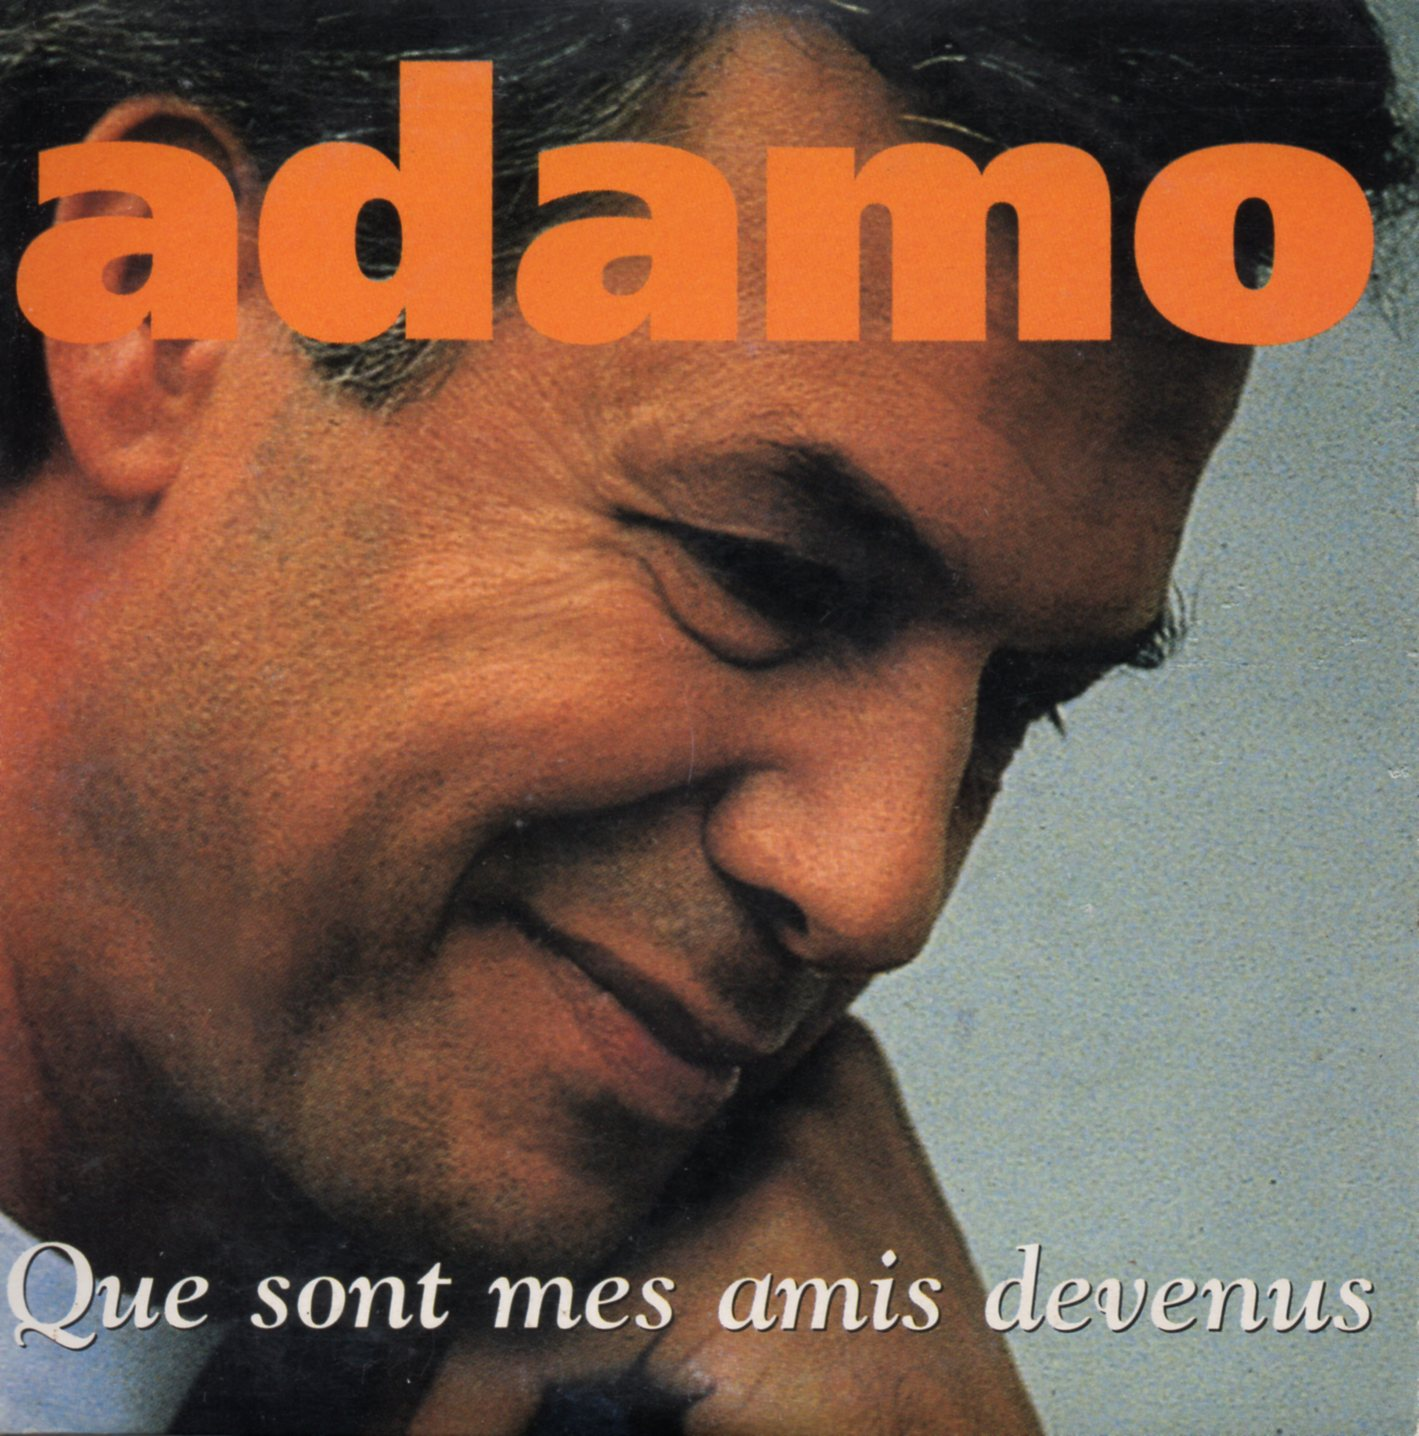 ADAMO - Que sont mes amis devenus 2-TRACK CARD SLEEVE - CD single